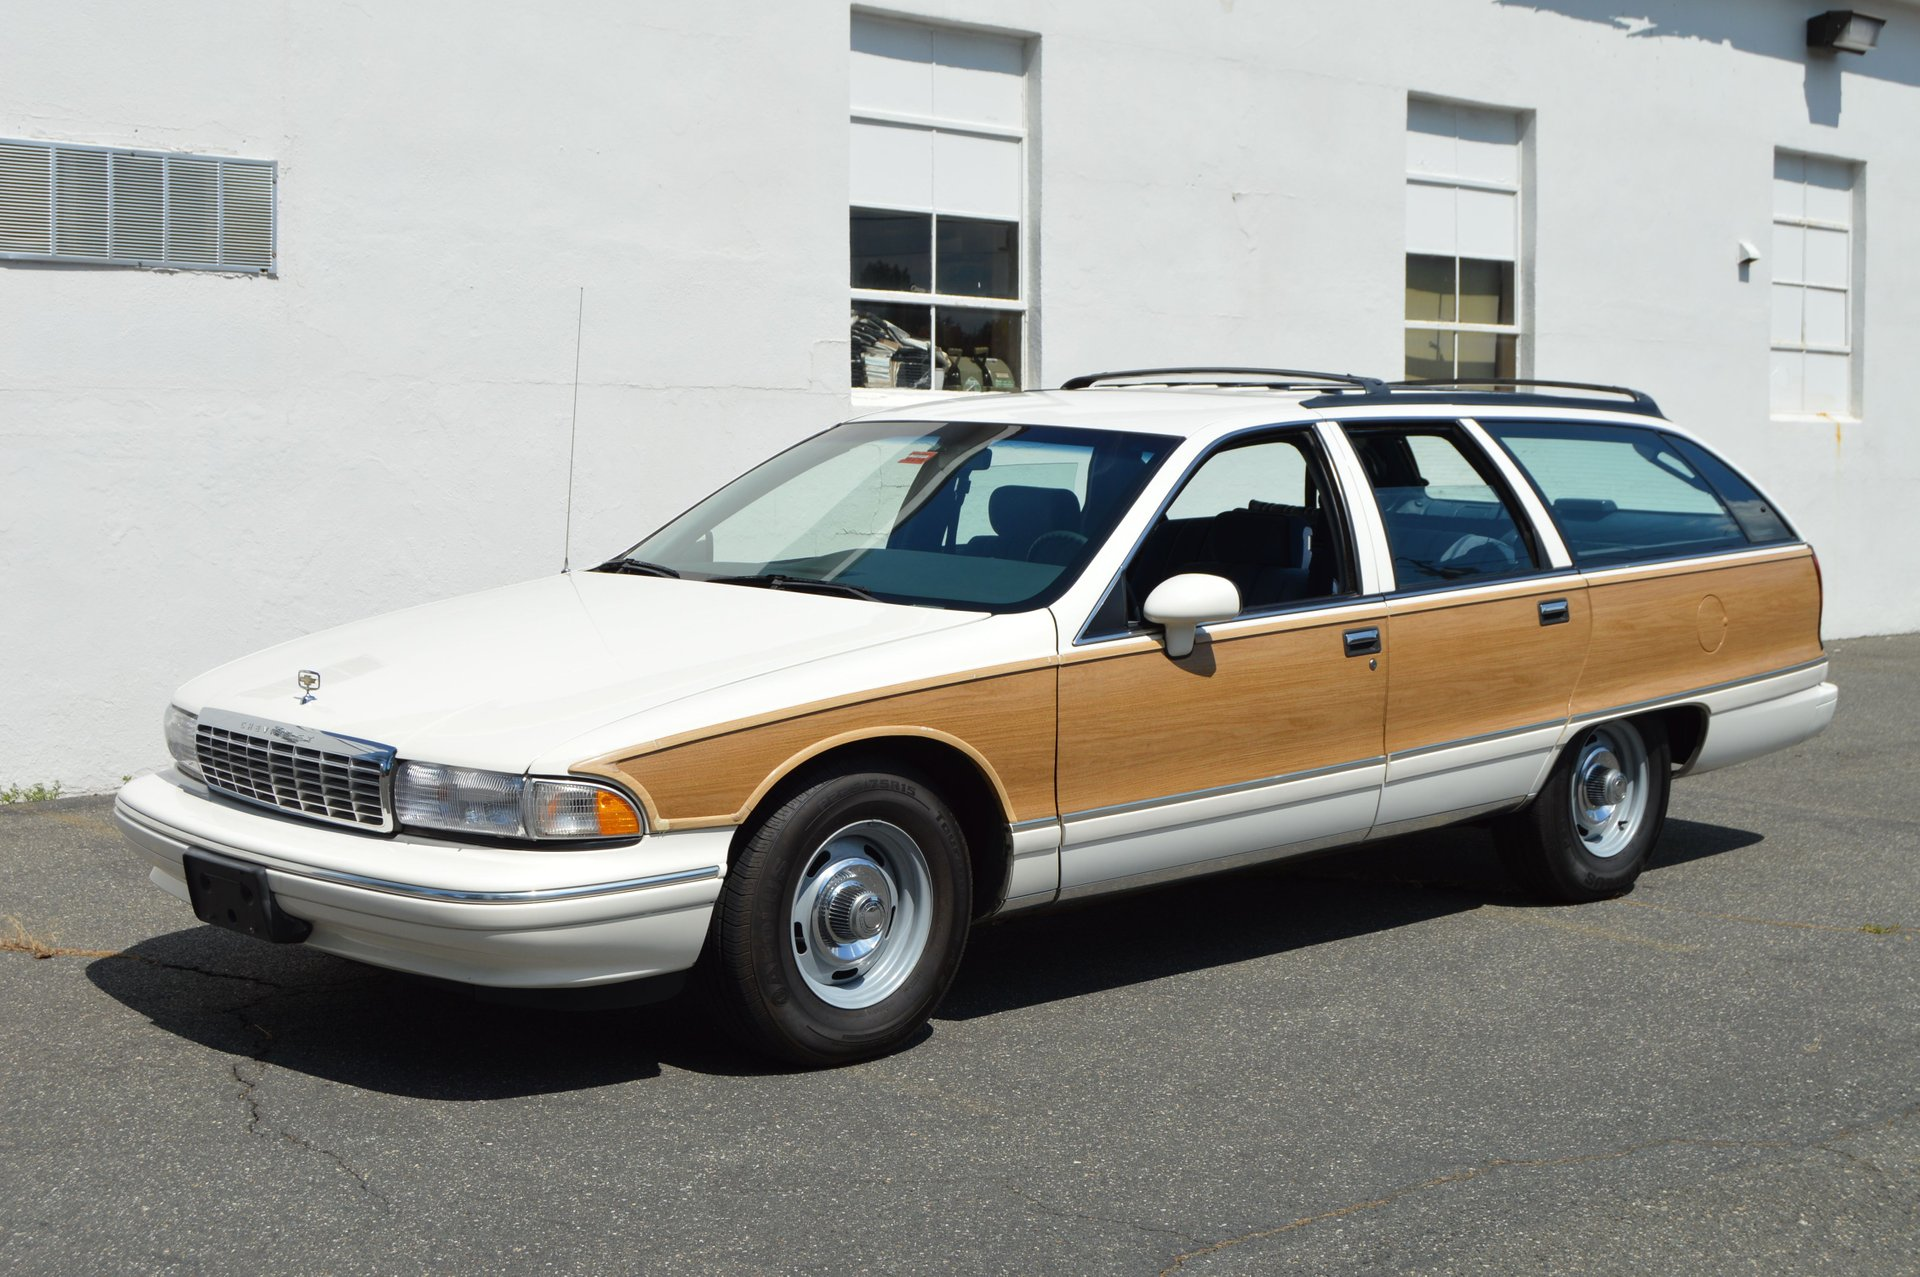 1993 chevrolet caprice estate wagon